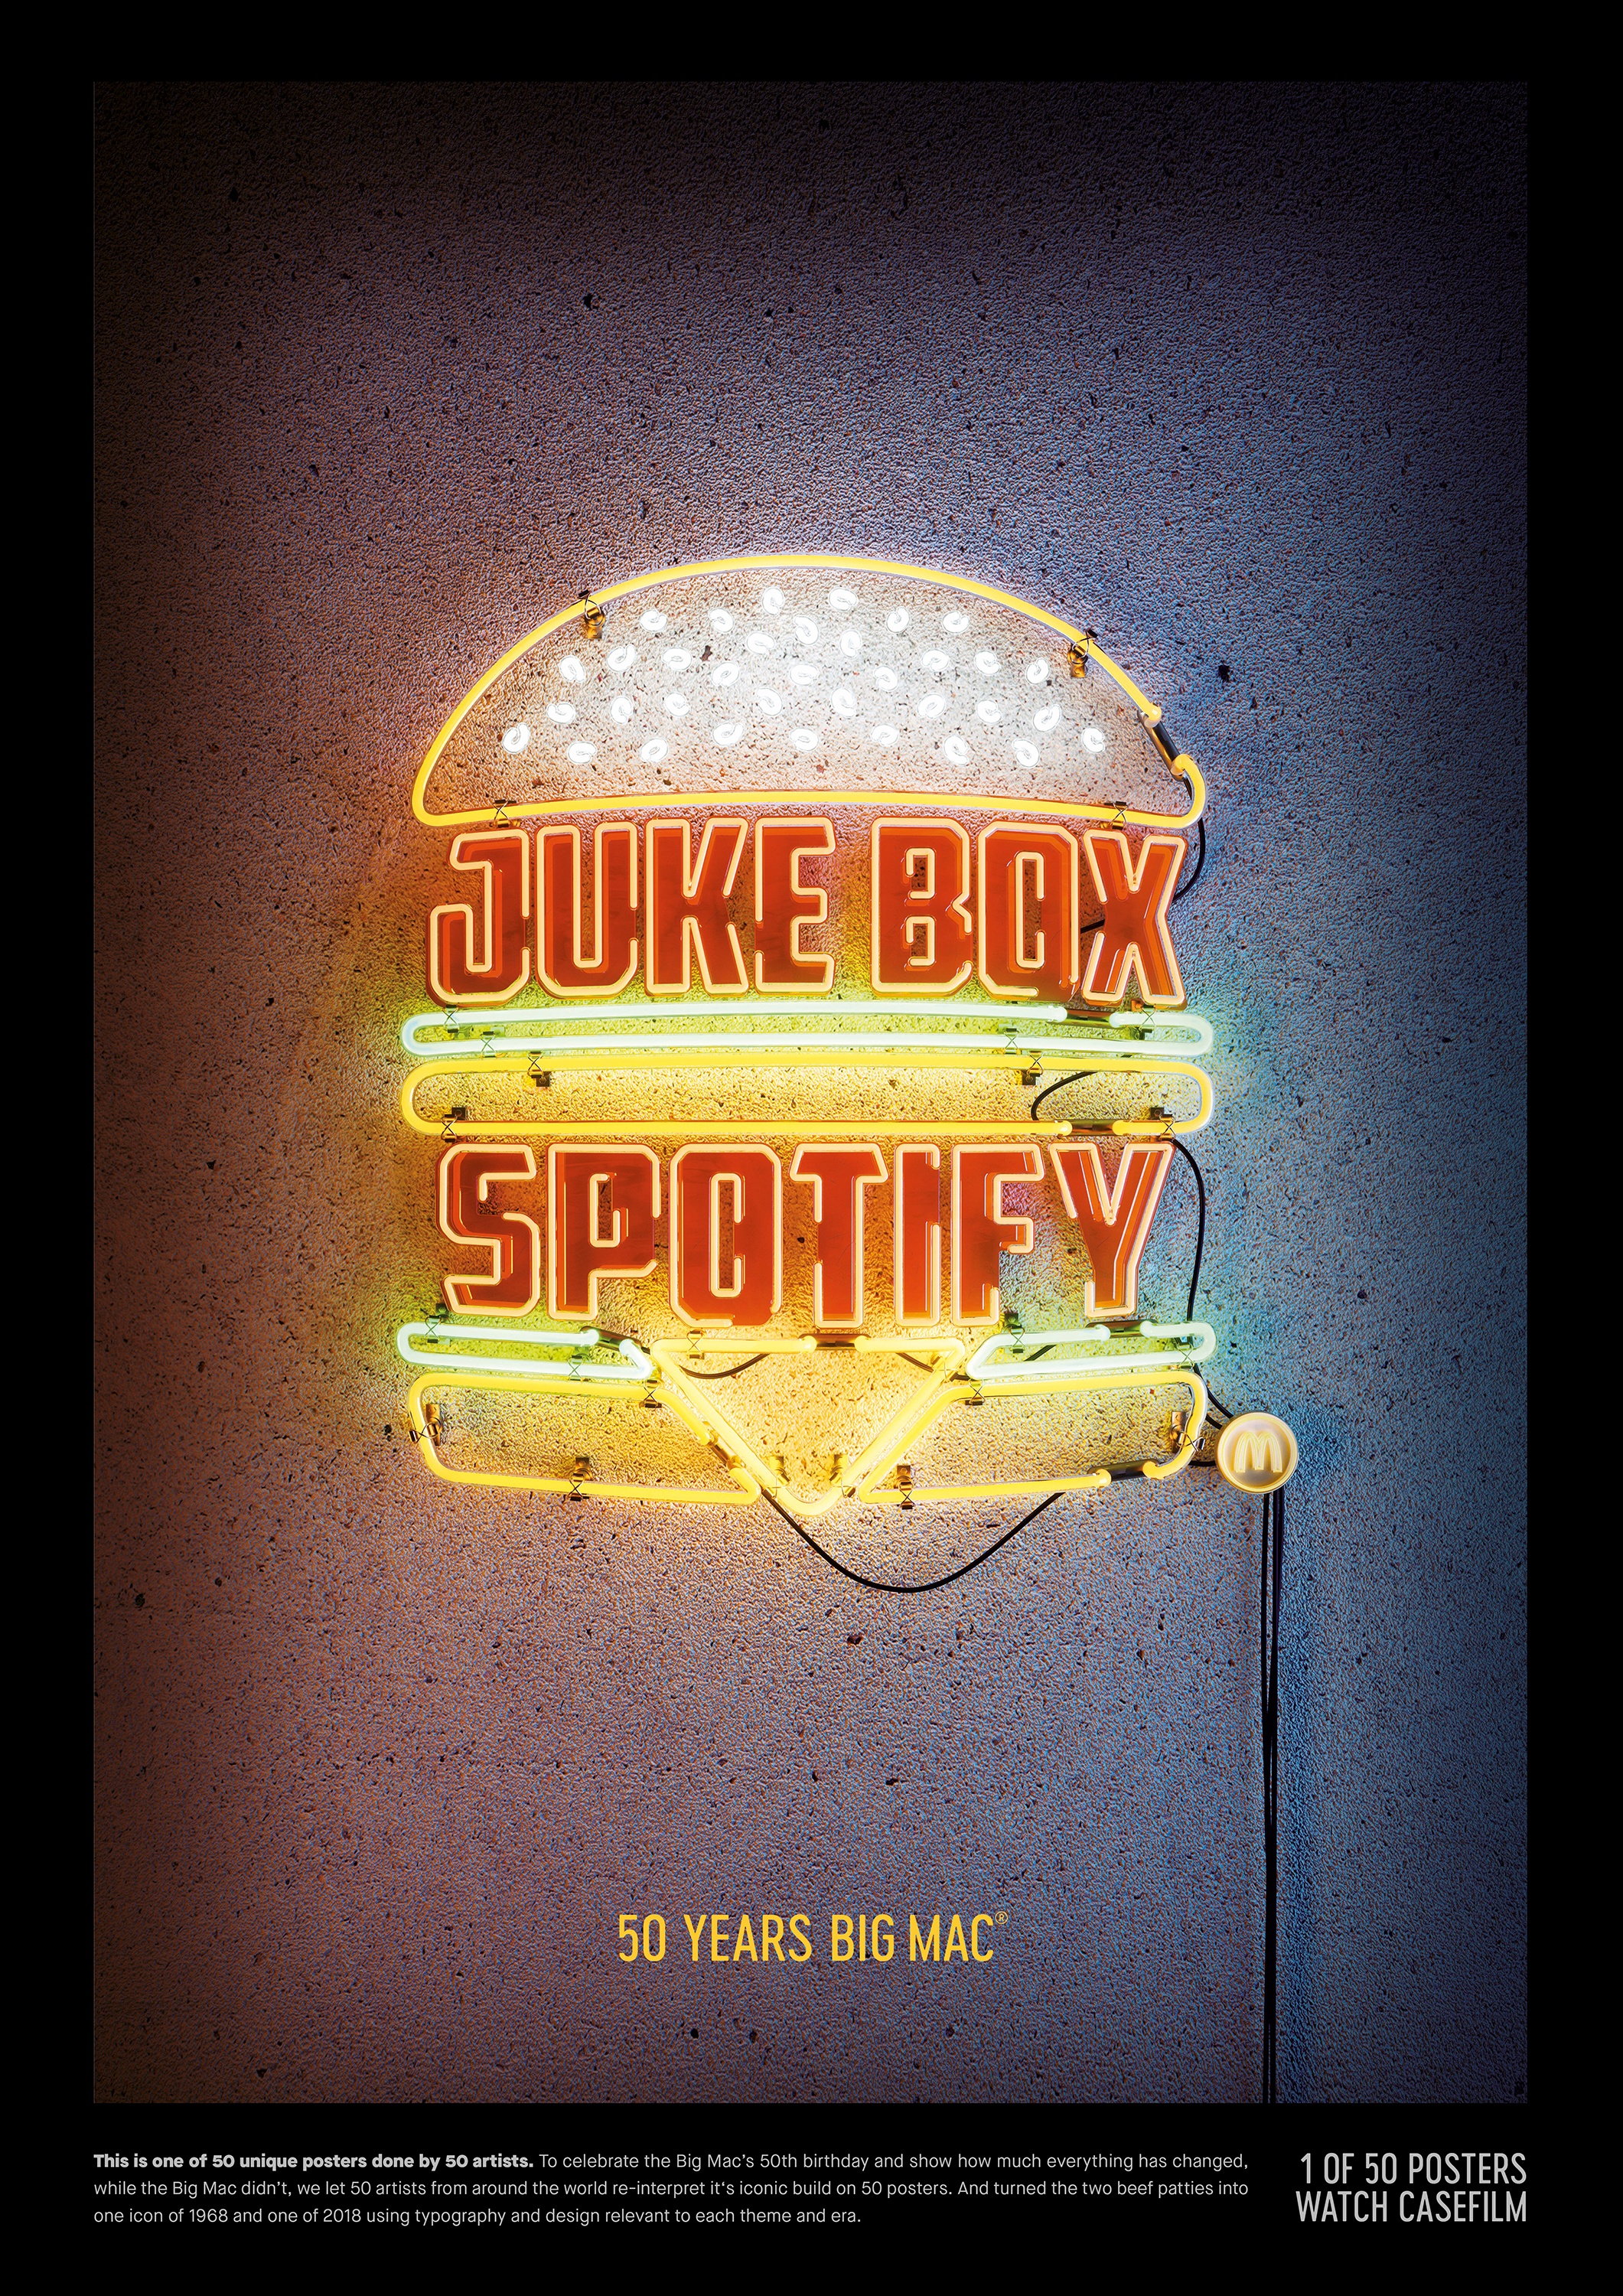 Image Media for Jukebox/Spotify